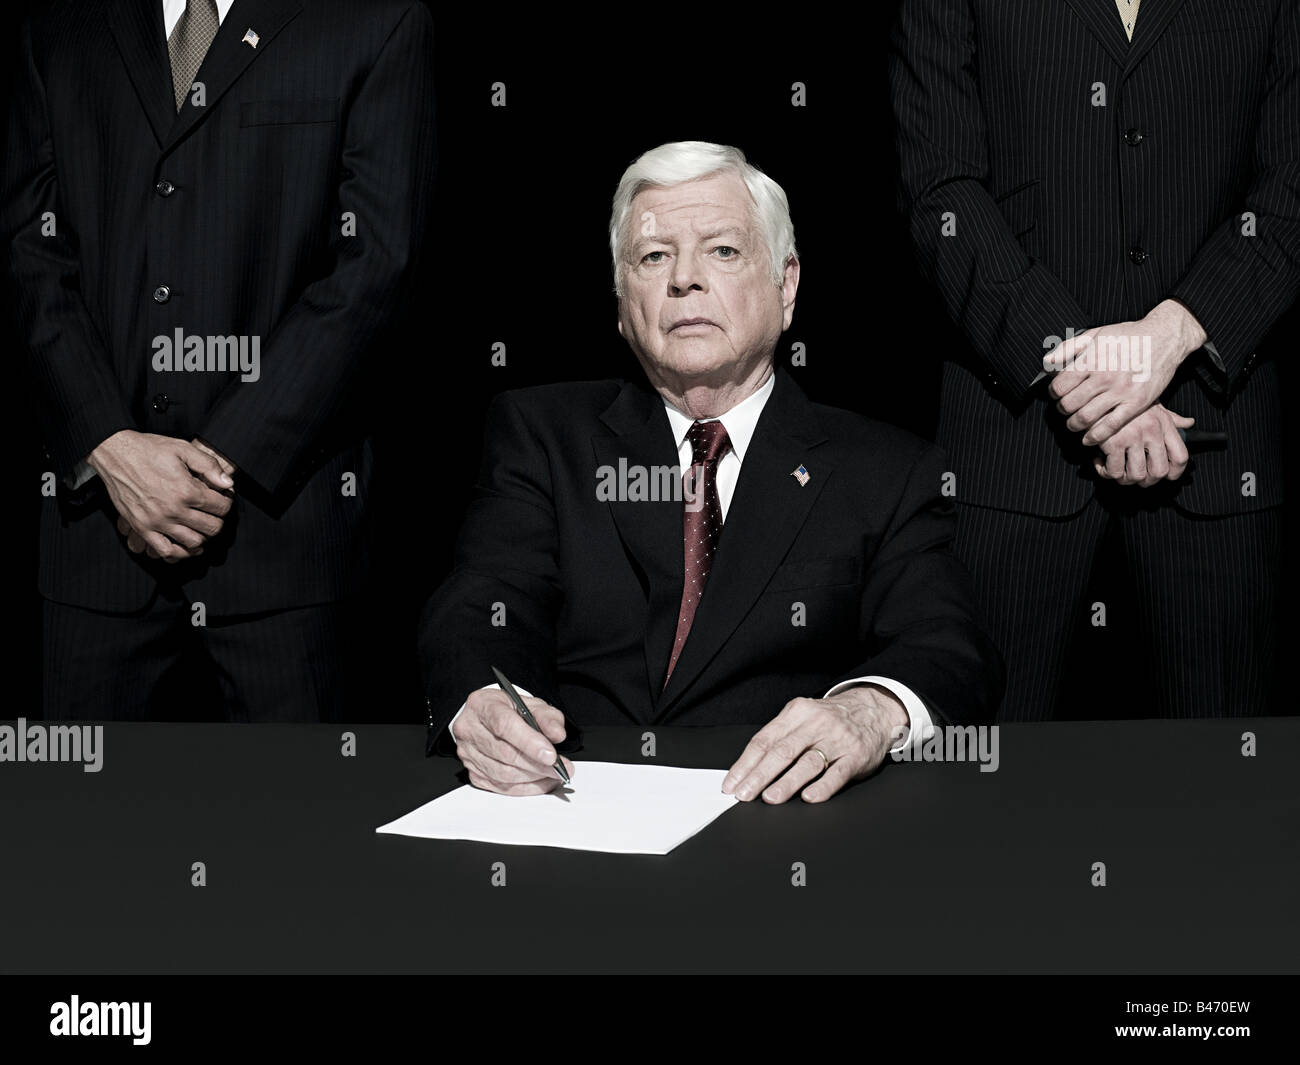 Politician signing paper Stock Photo